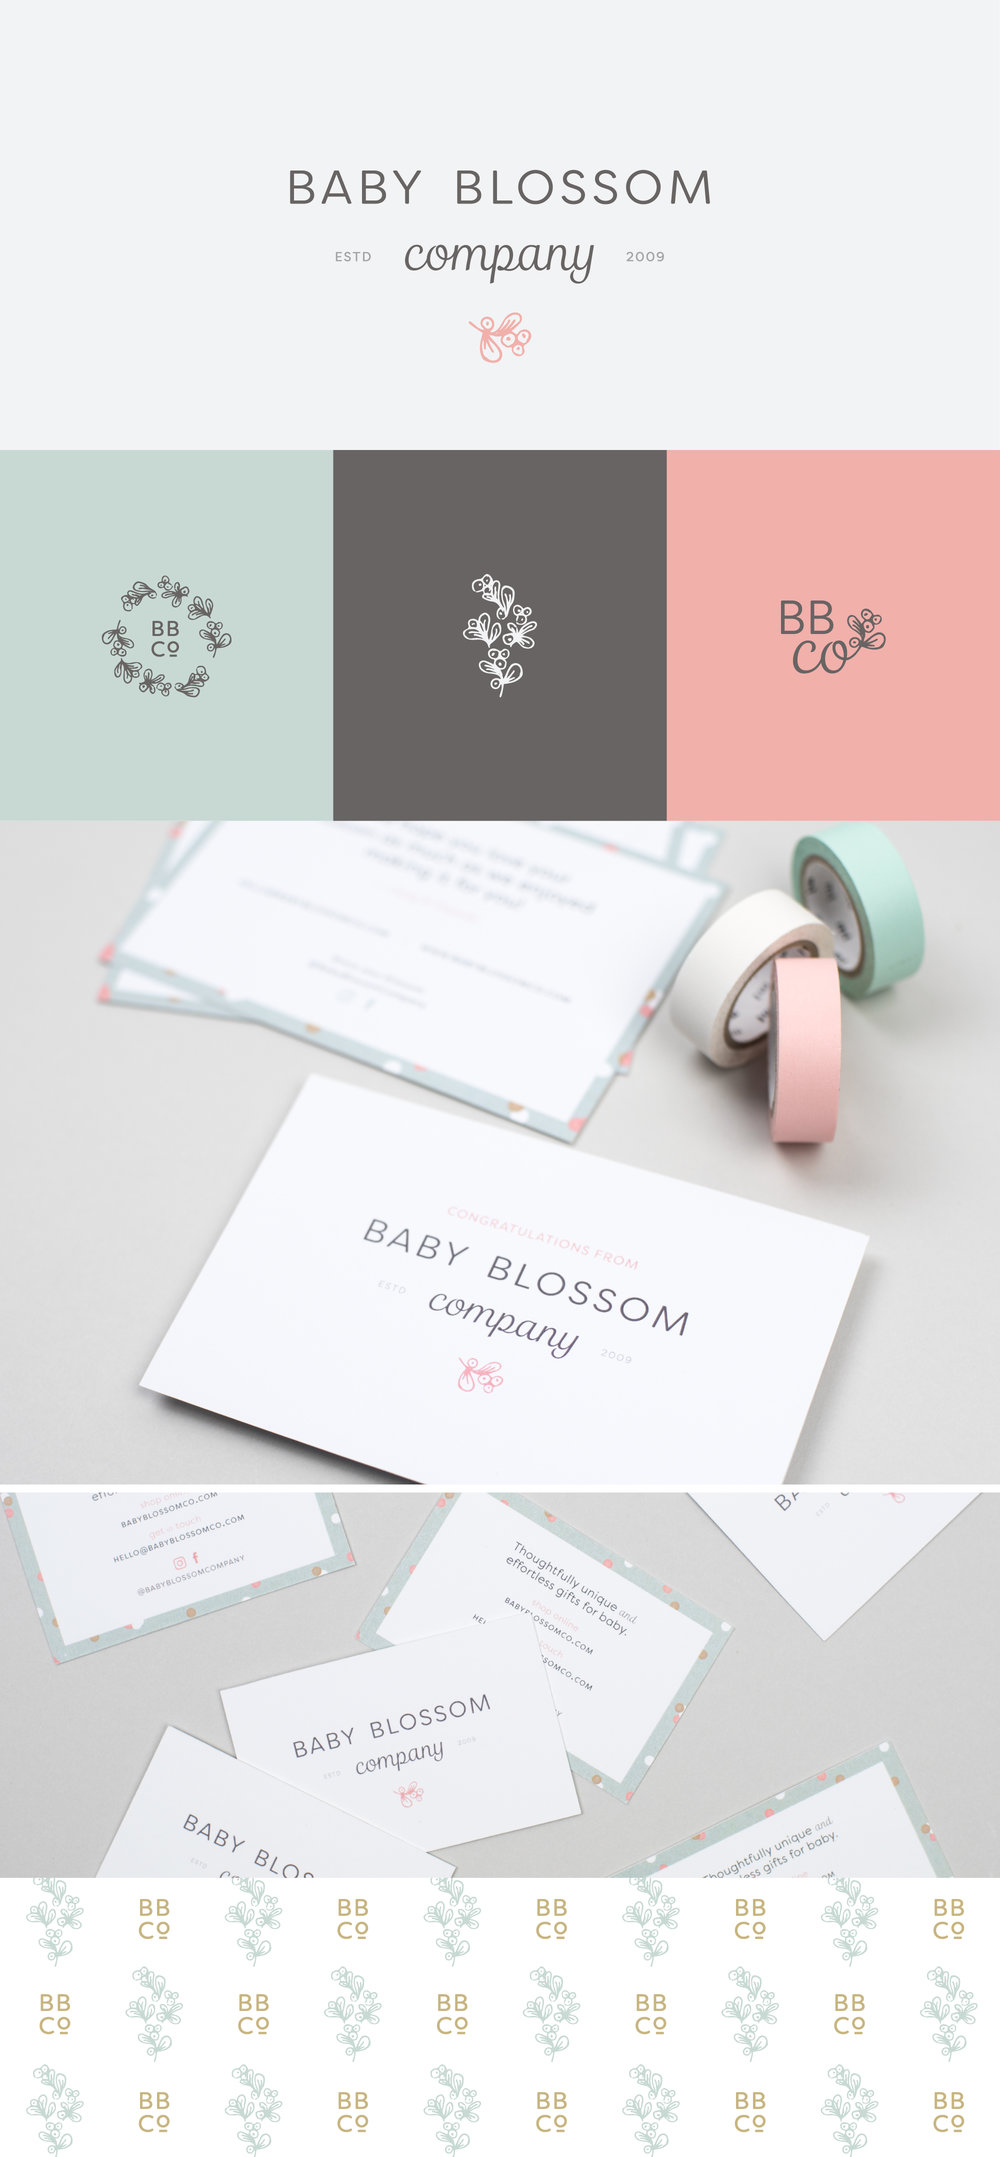 Baby Blossom Company brand identity | Spruce Rd. | logo design, packaging design, pattern, baby branding